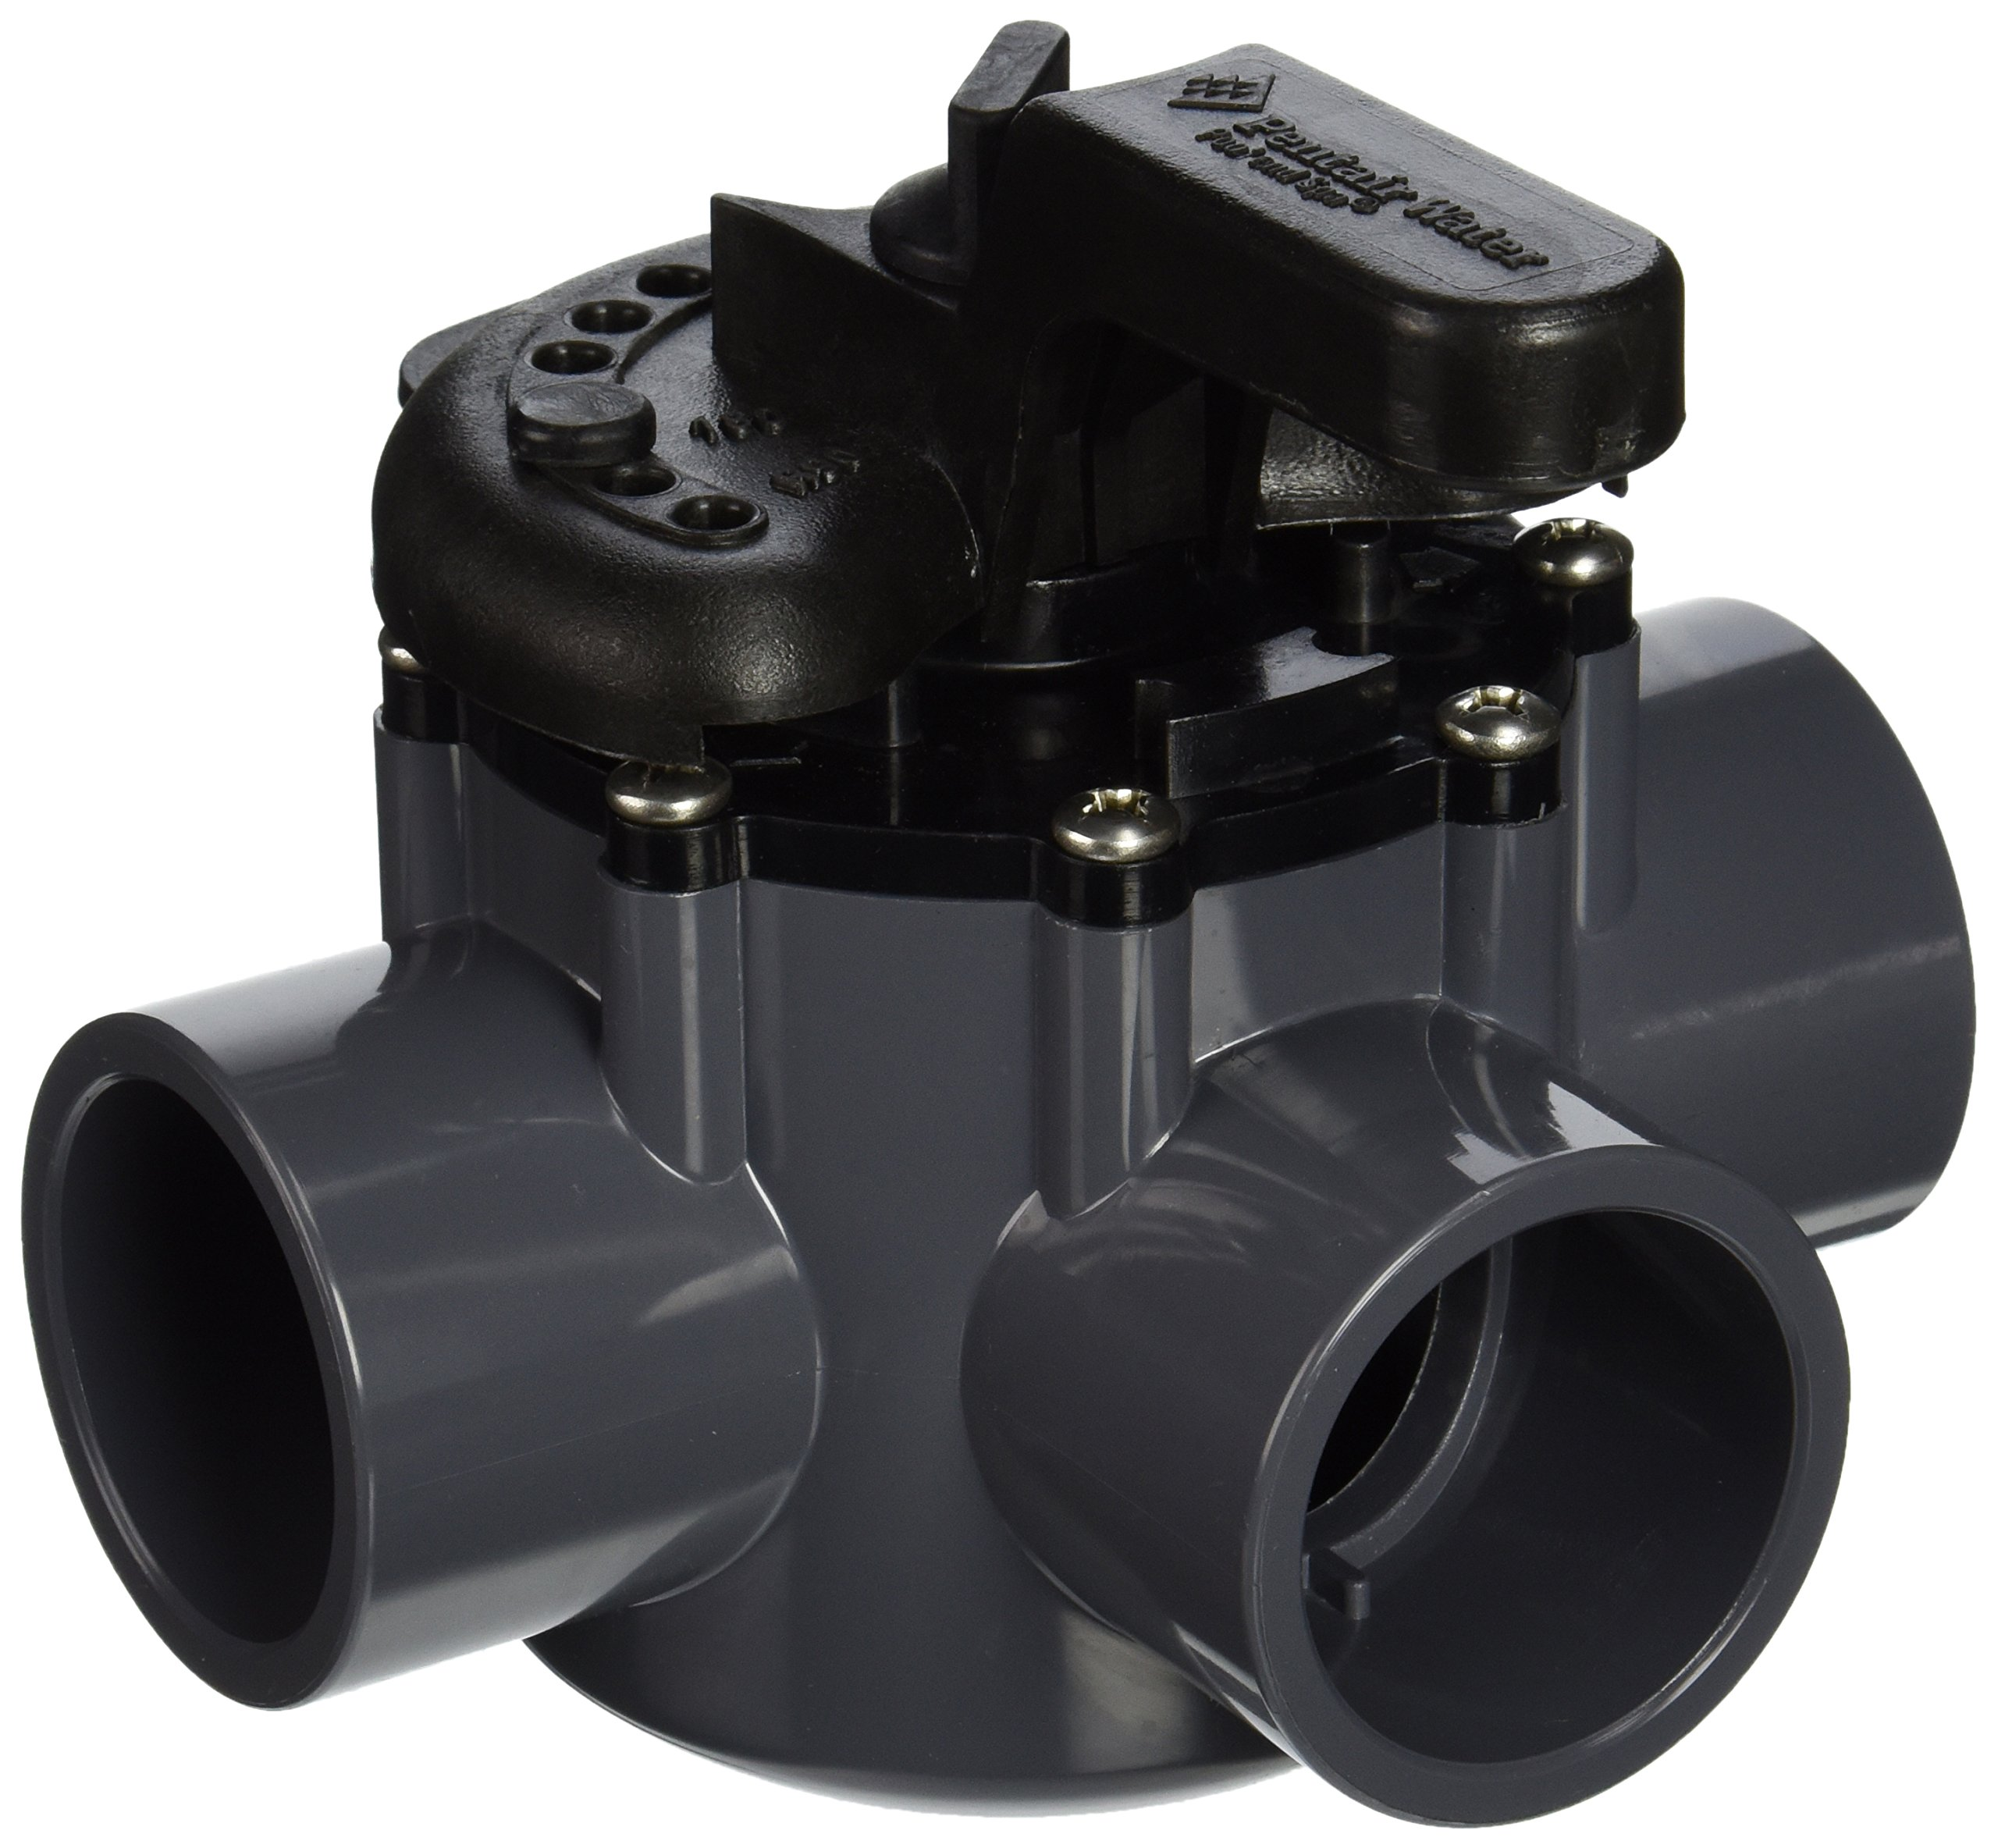 Pentair 263036 Diverter Valve 2-Way 1-1/2-Inch (2-Inch slip Outside), CPVC by Pentair